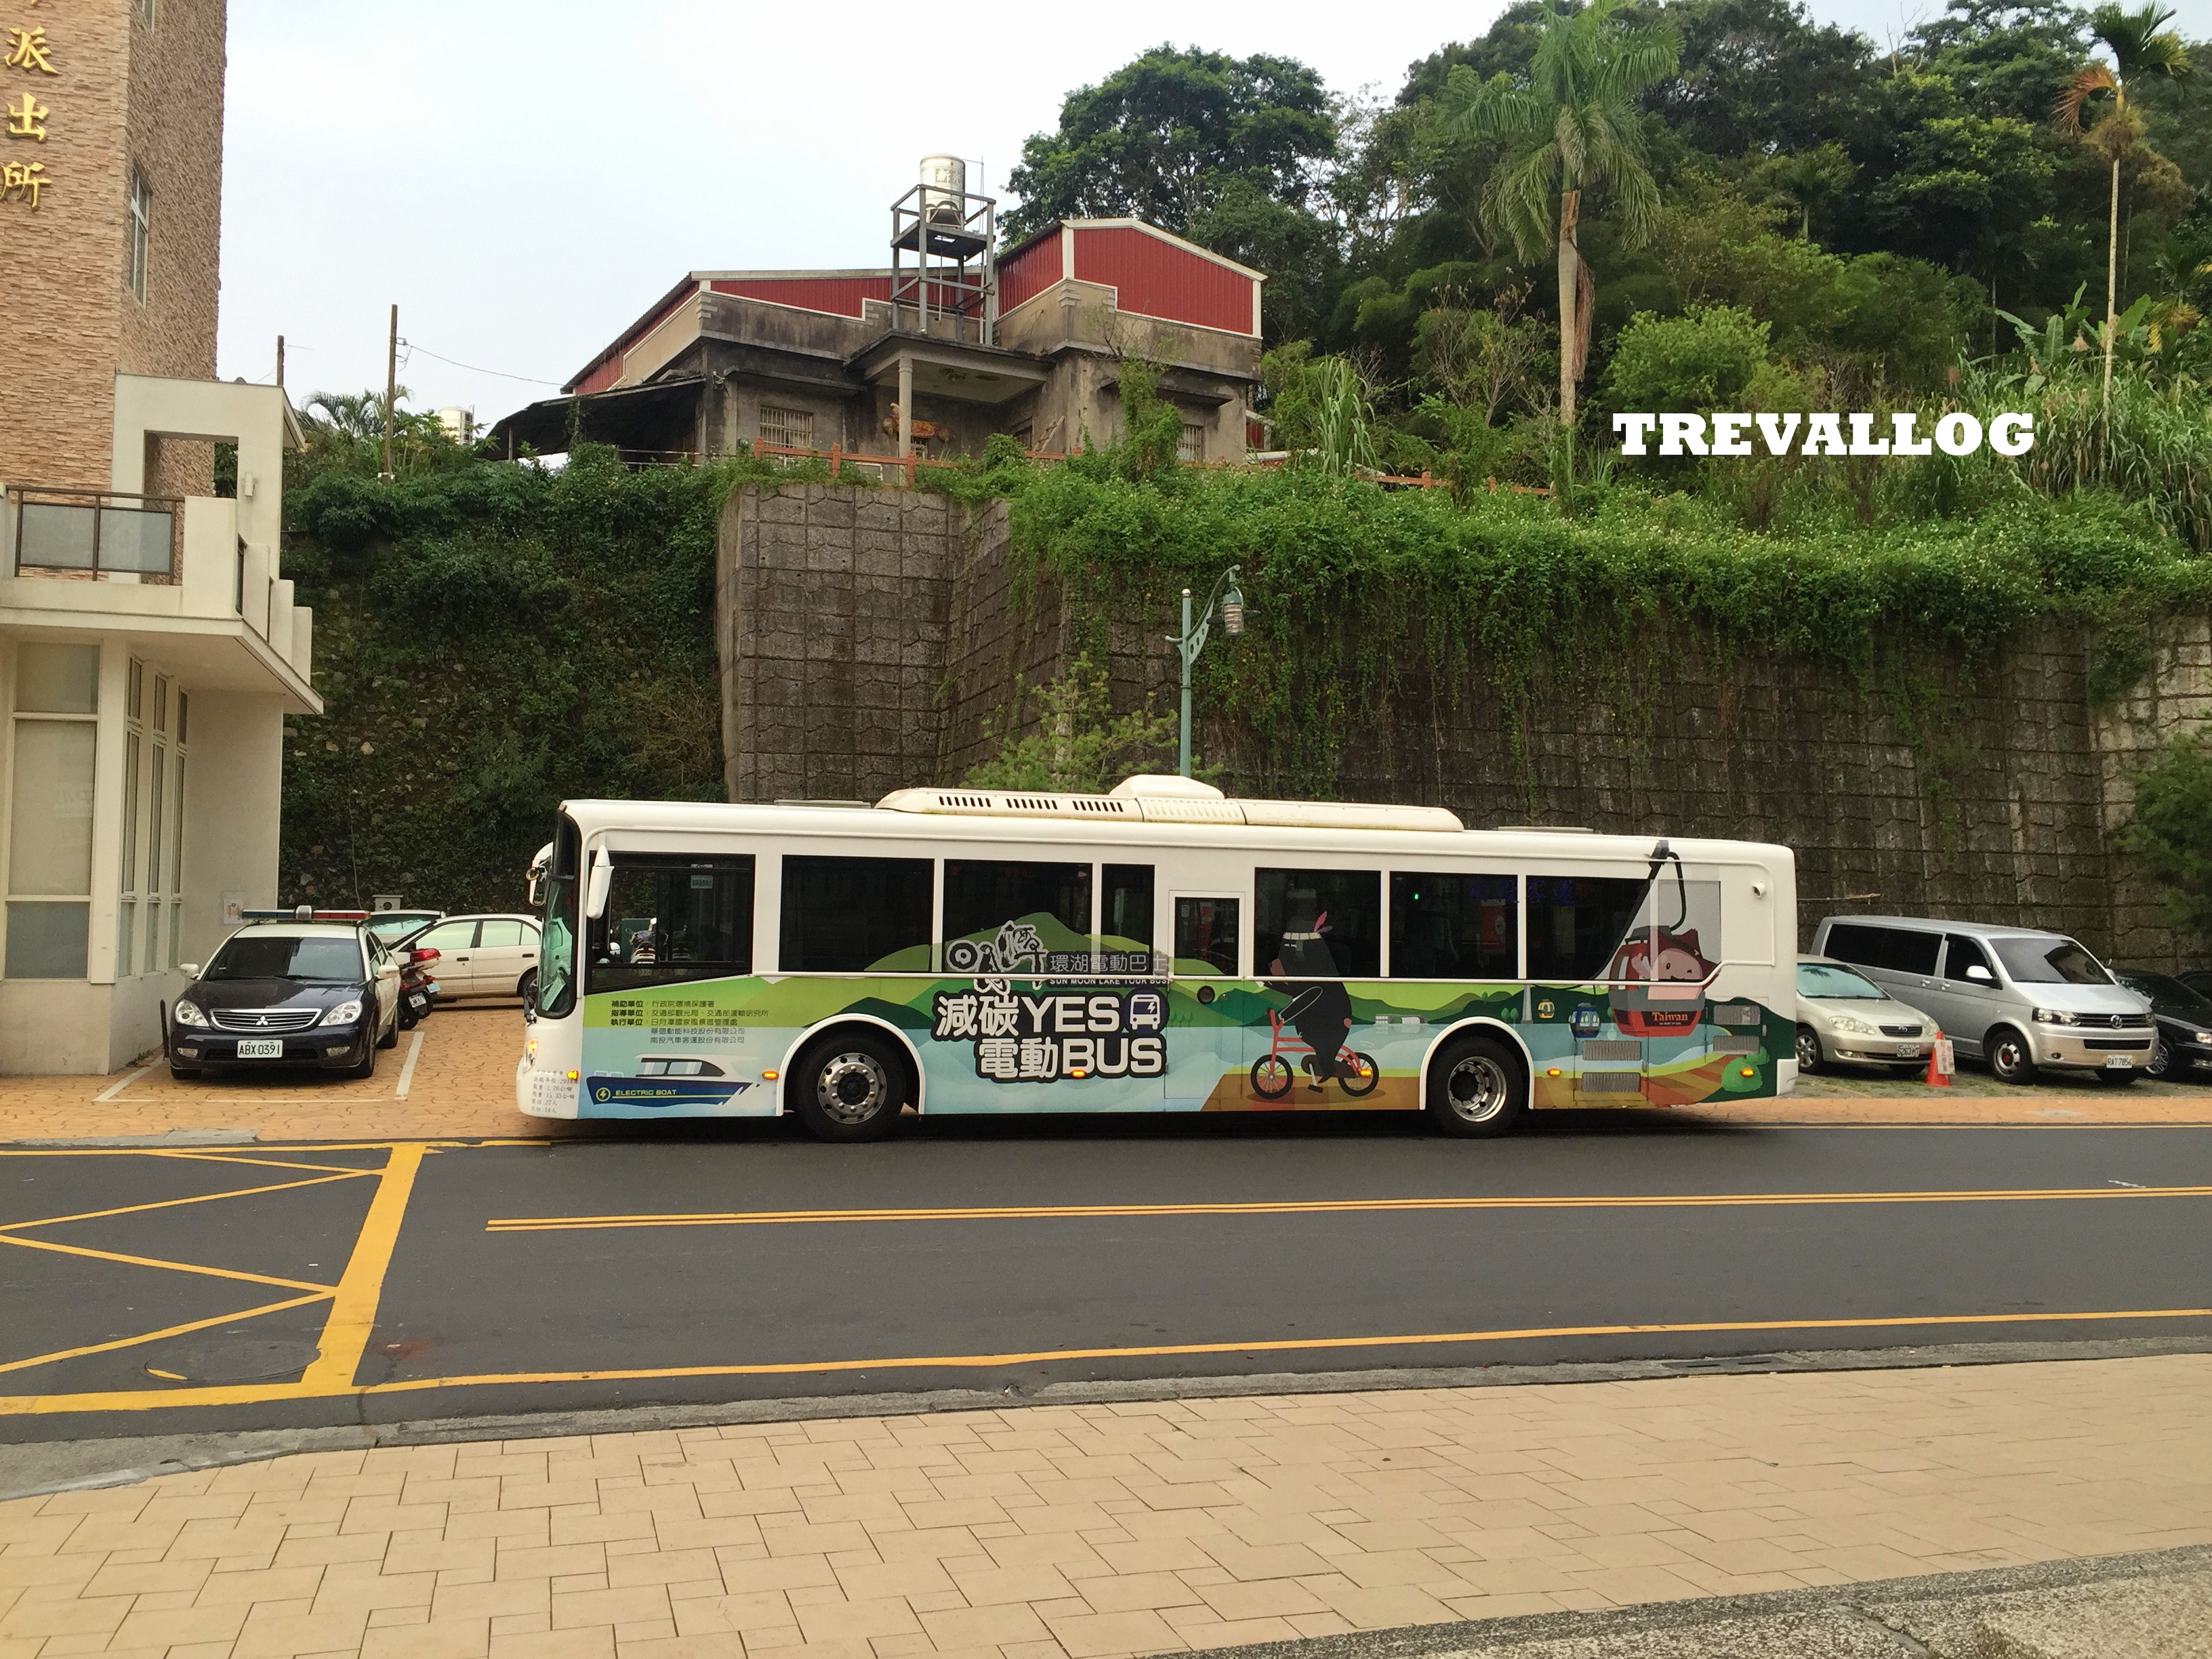 Yes Bus, round the lake bus, we took at Ita Thao, Sun Moon Lake, Taiwan